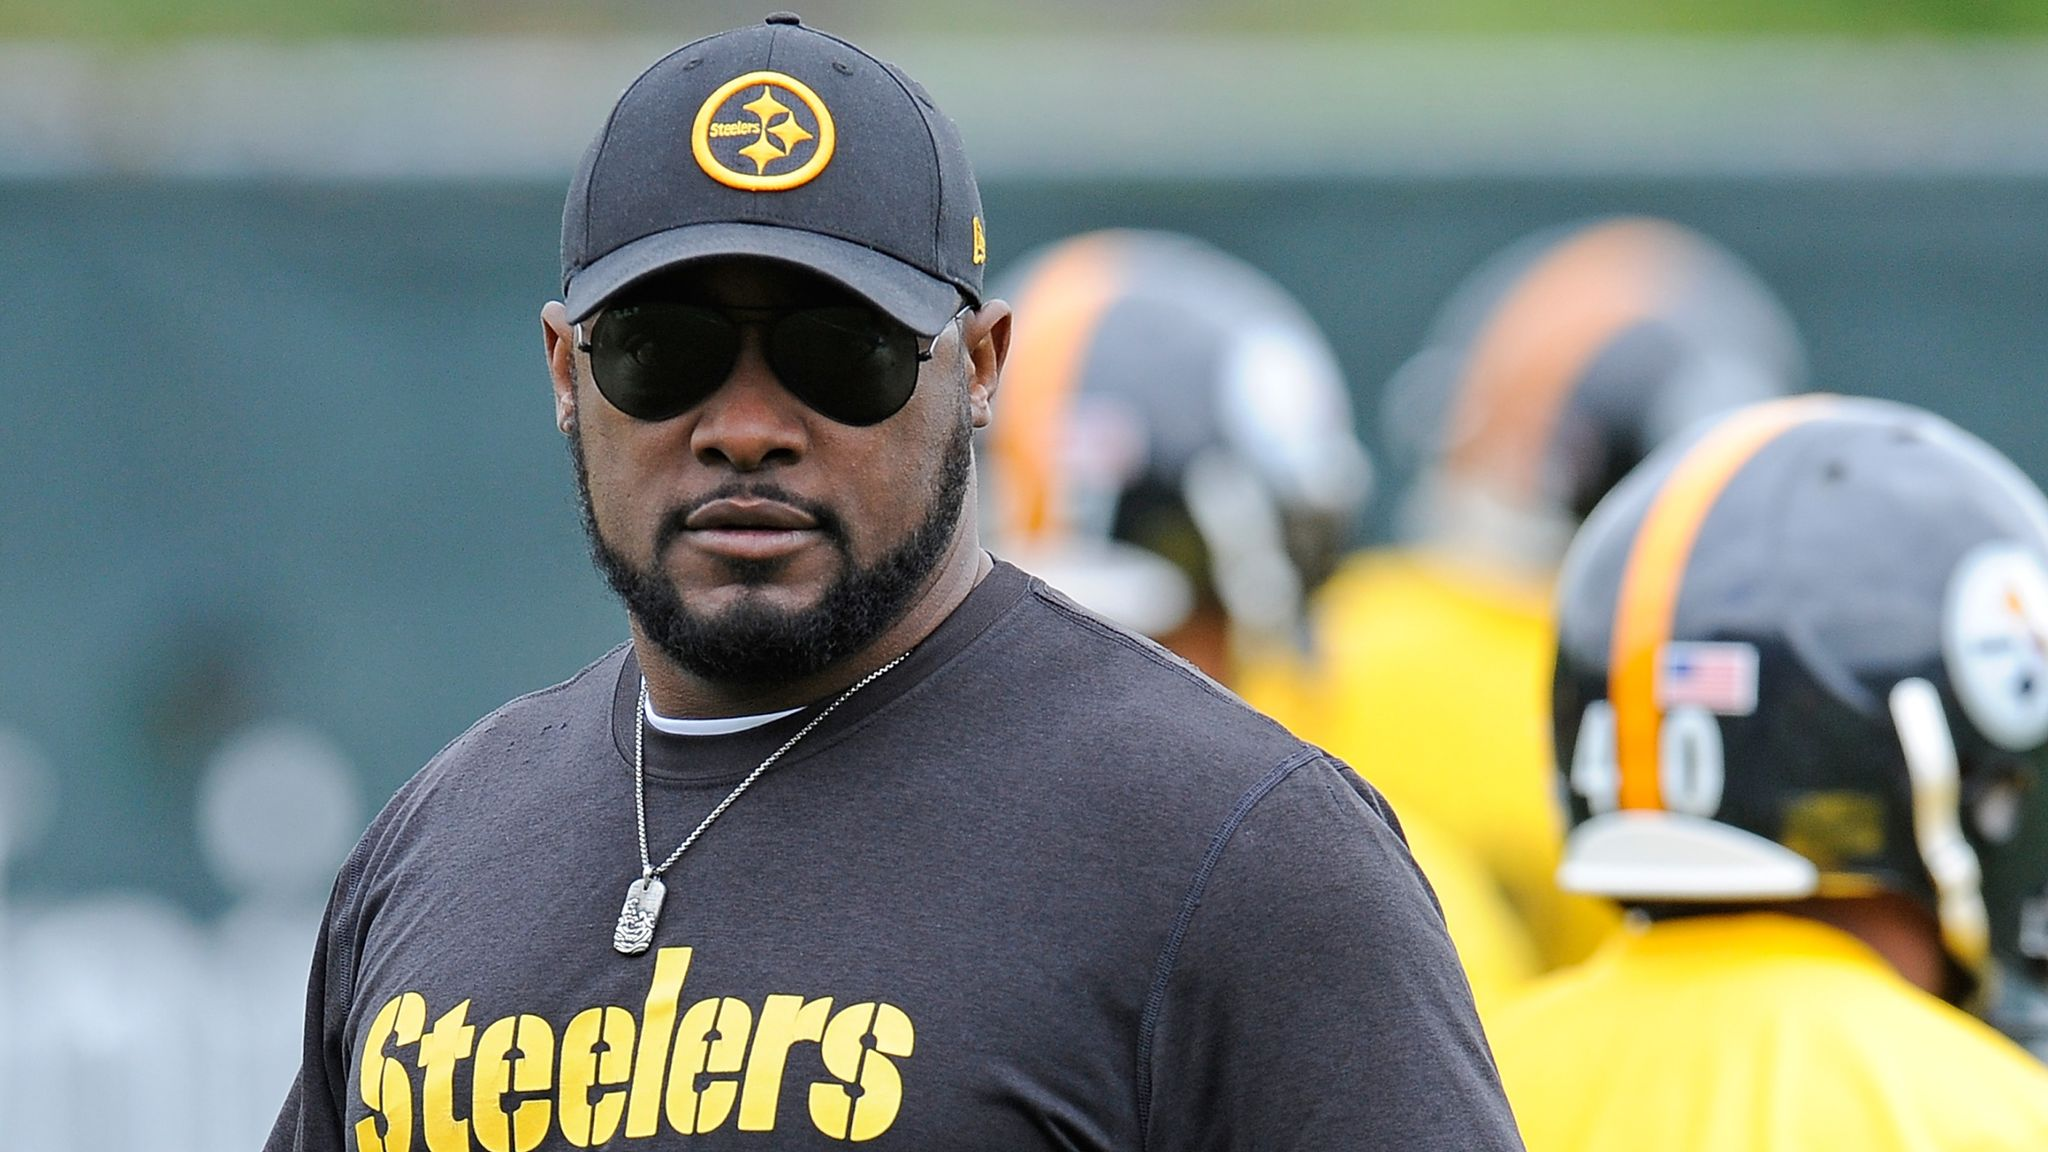 Pittsburgh Steelers coach Mike Tomlin says NFL facilities must all open at the same time | NFL News | Sky Sports